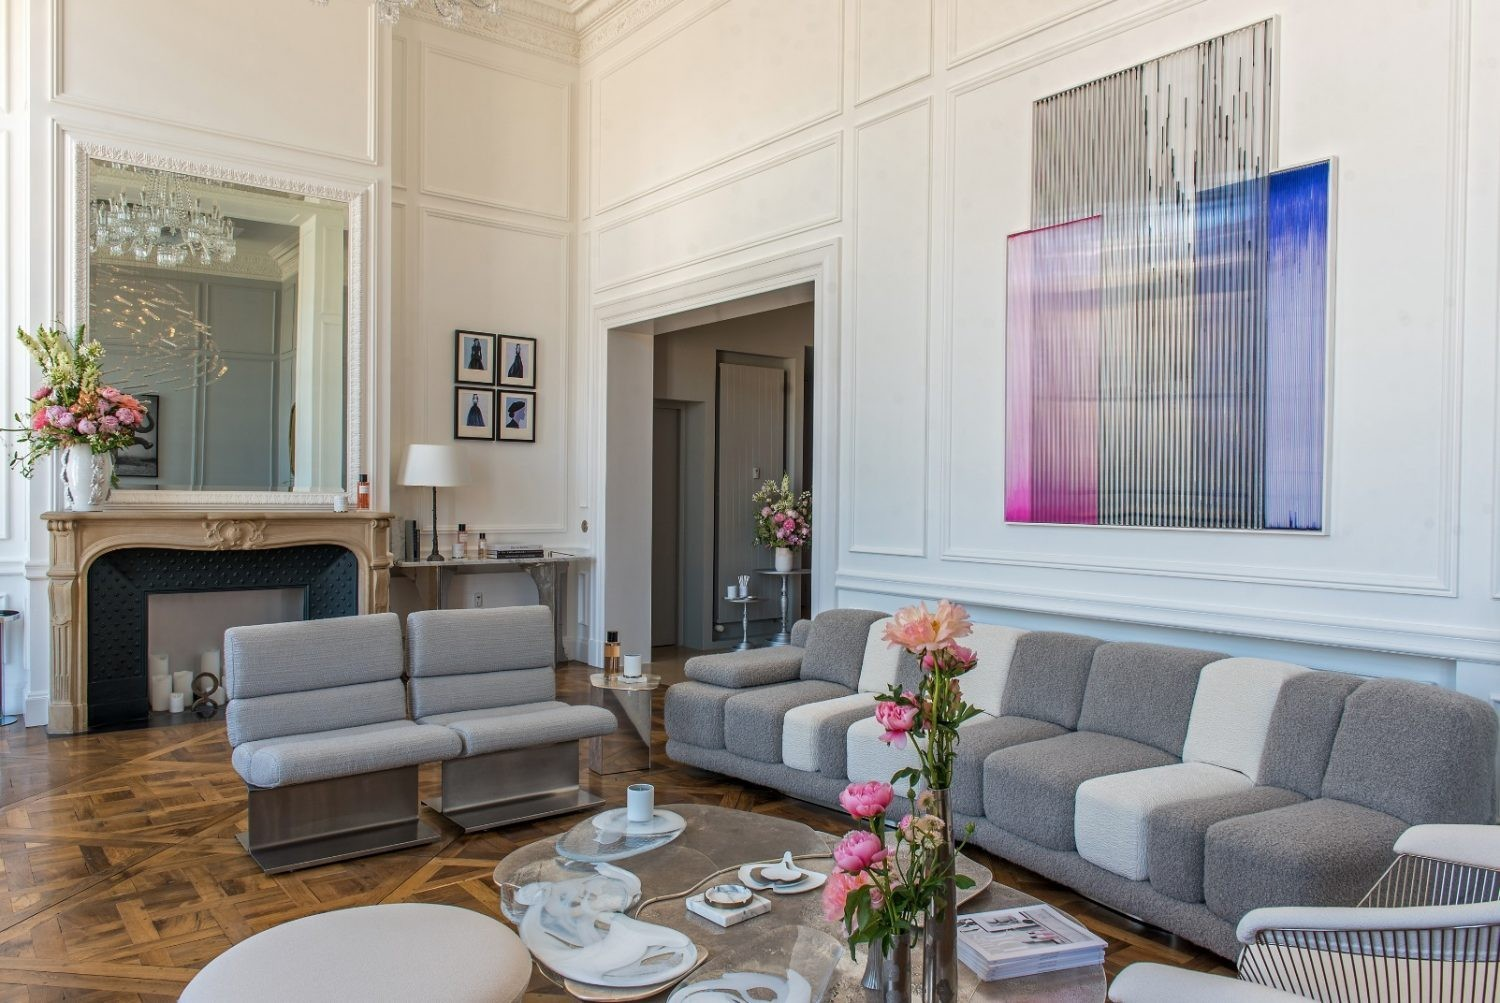 dior Dior Paris Apartment Envisioned by Carpenters Workshop Gallery Carpenters Workshop Gallery8